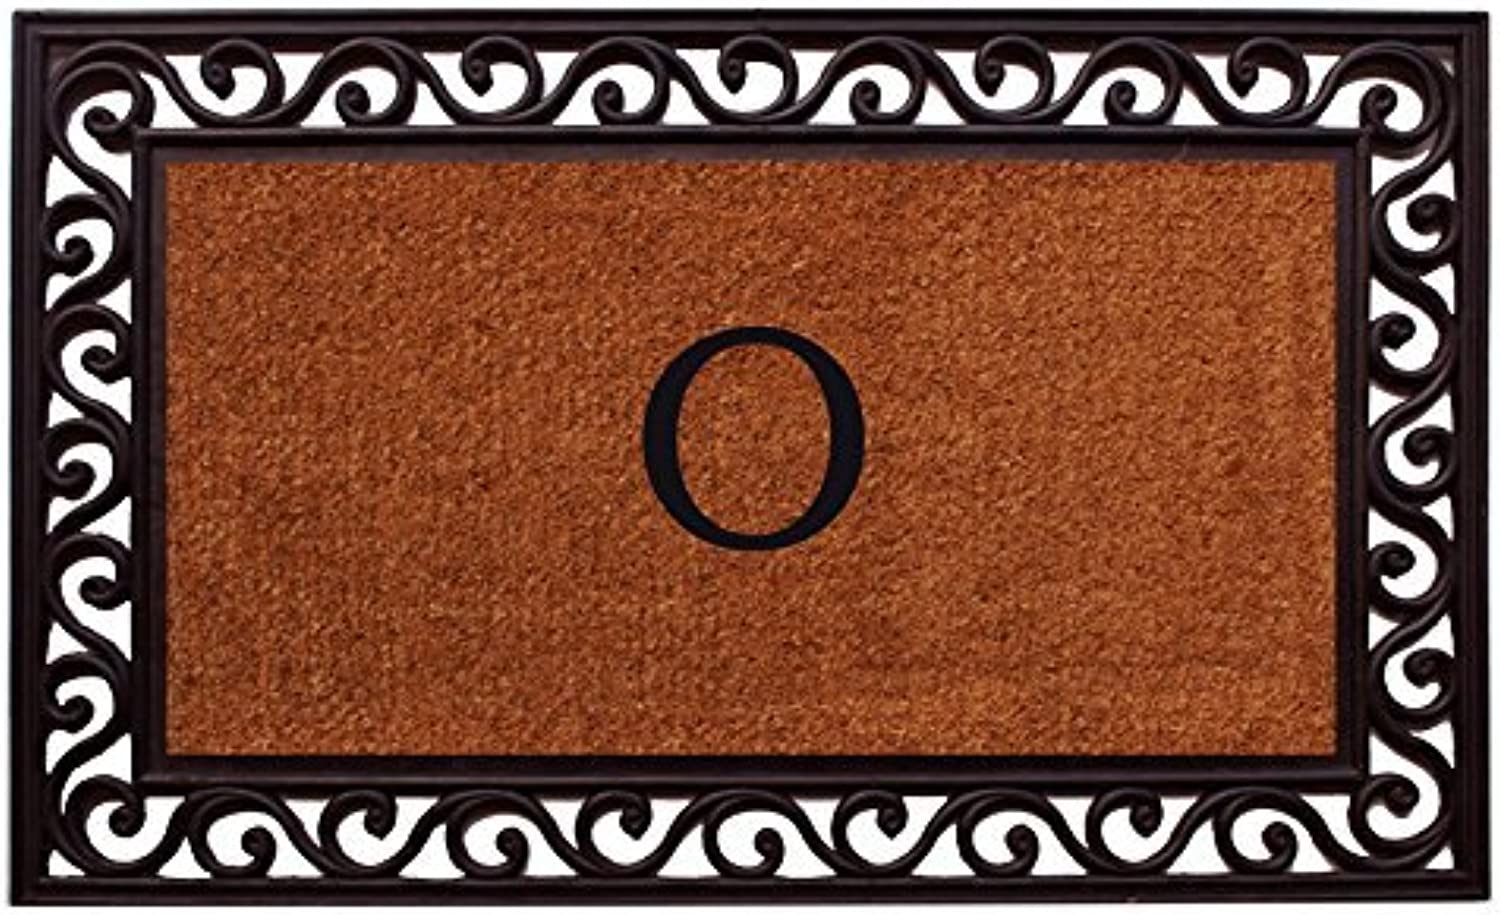 Home & More 100062236O Rembrandt Monogram Doormat 22-Inch X 36-Inch (Letter O)